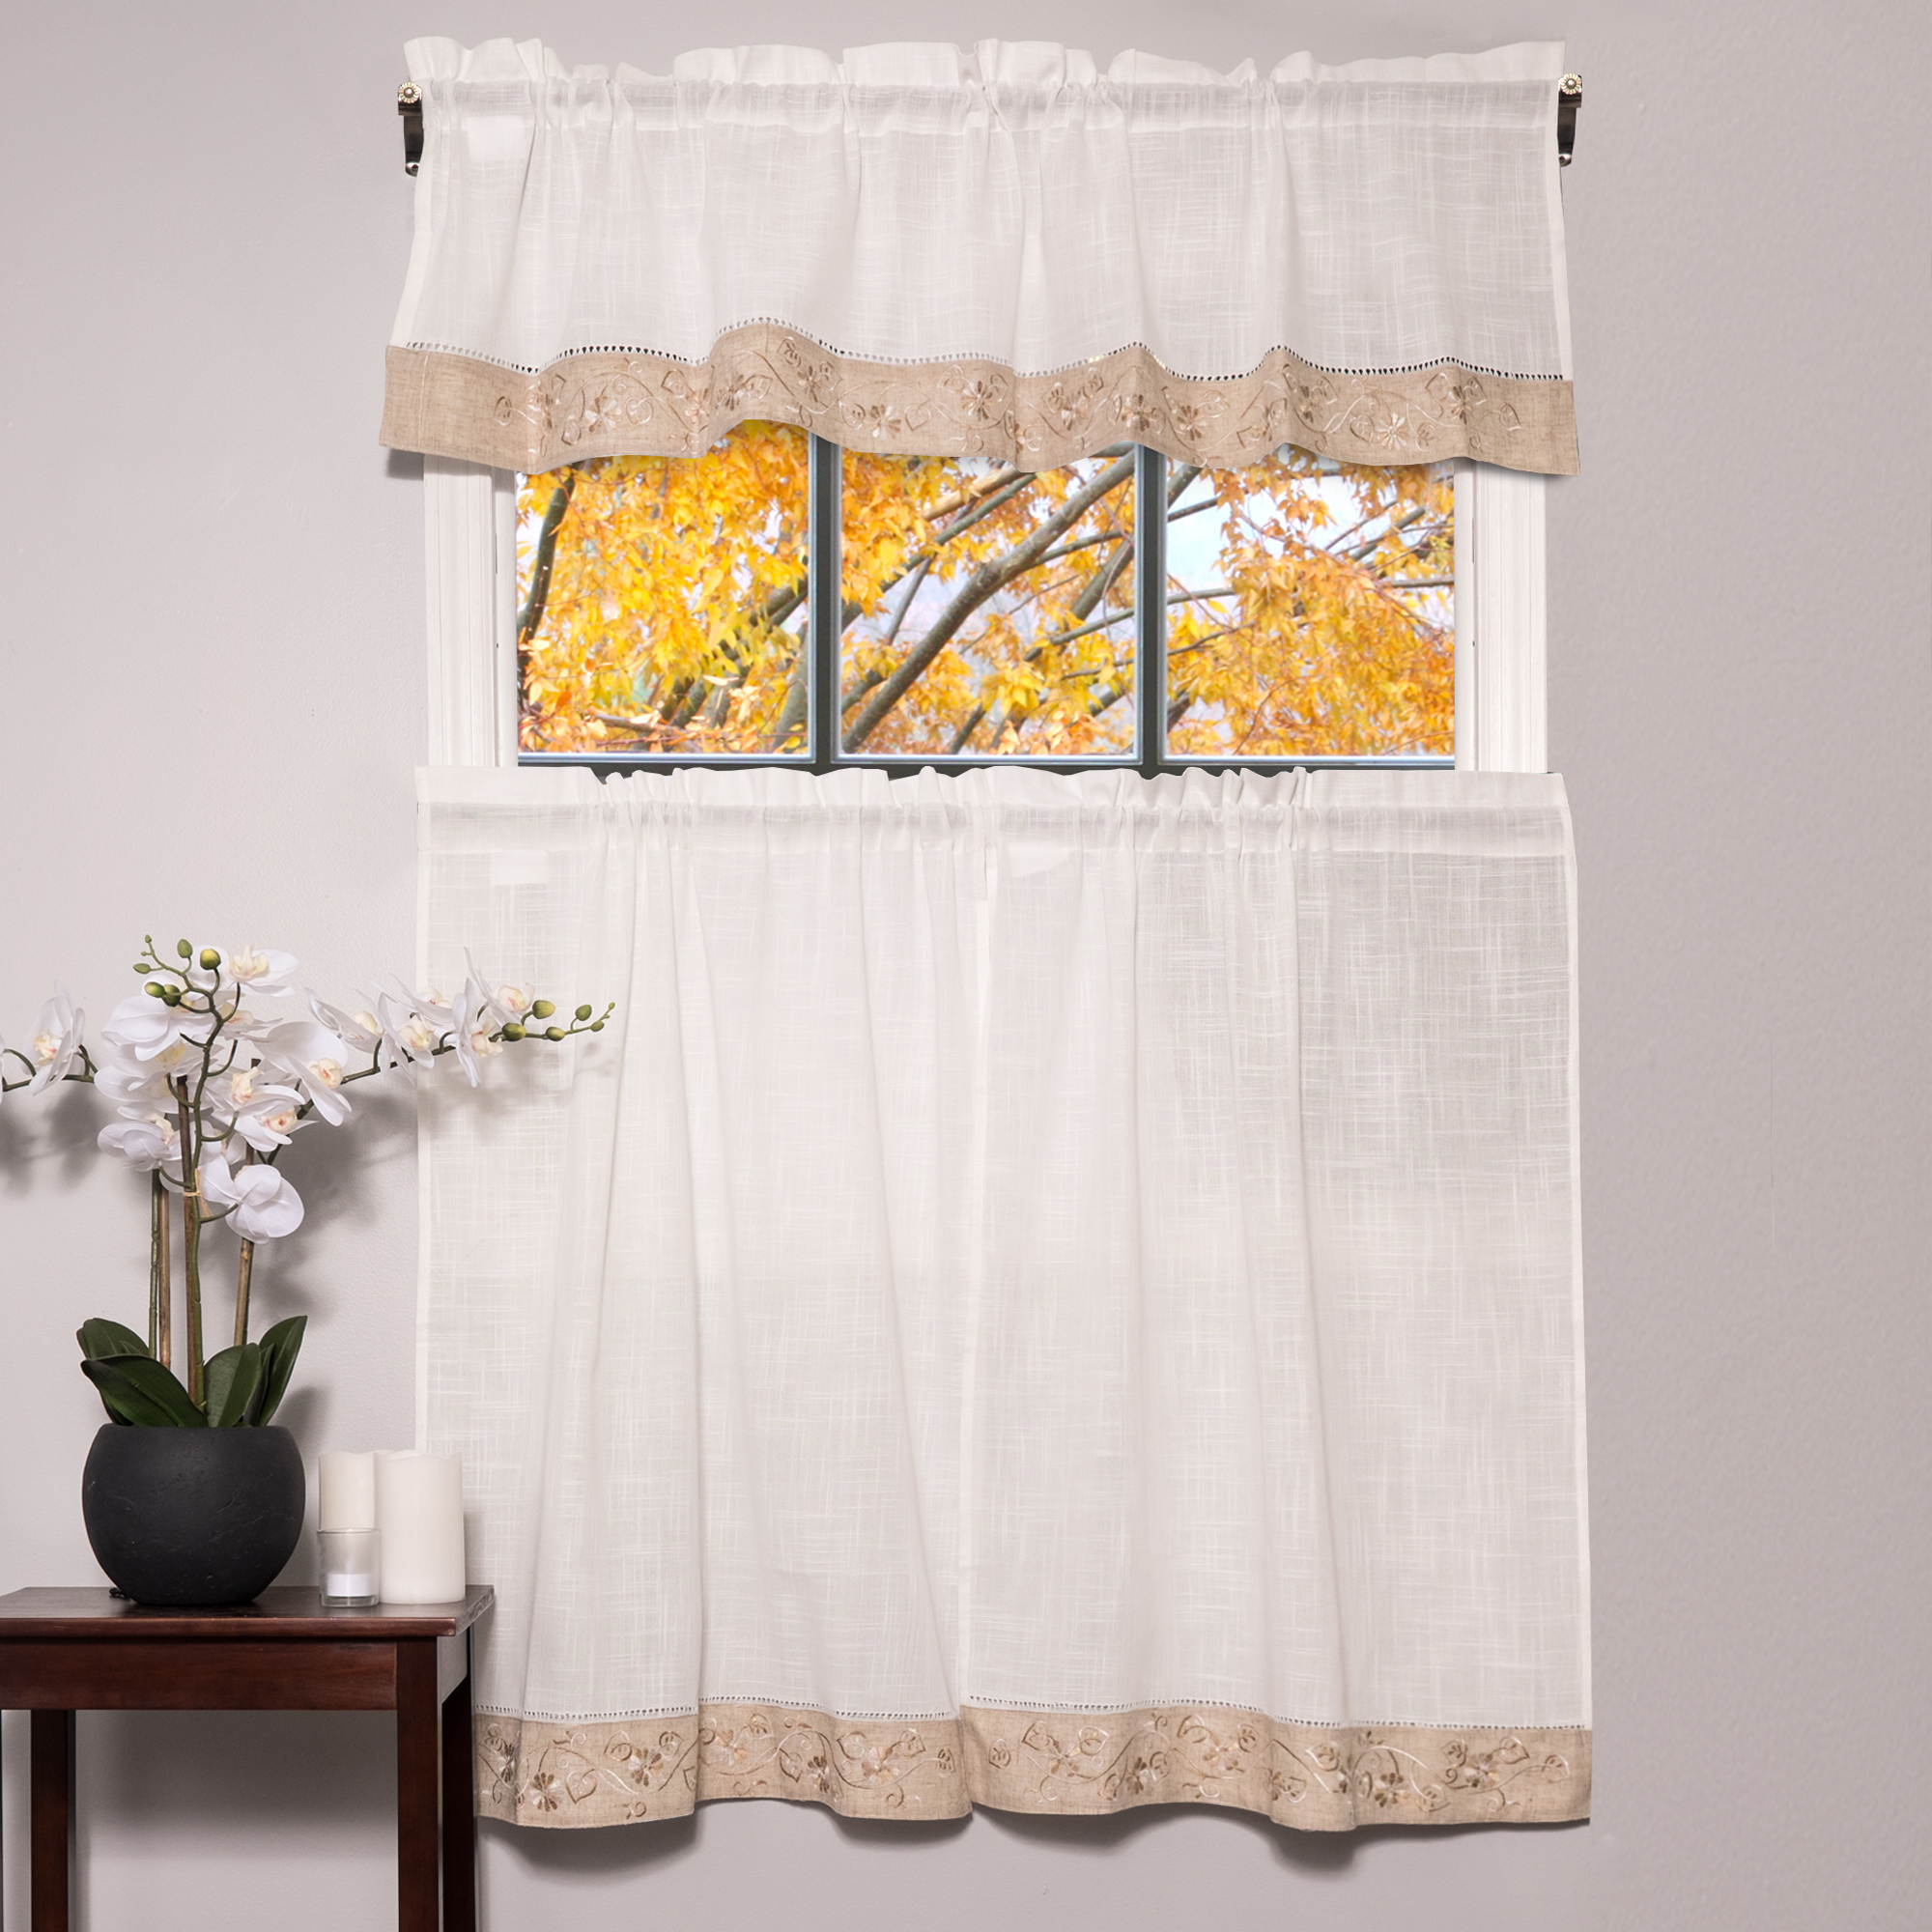 "Oakwood Linen Style Kitchen Window Curtain 58"" X 36"" Kitchen Curtains, Set Of 2, Natural Pertaining To Embroidered Floral 5 Piece Kitchen Curtain Sets (View 16 of 20)"